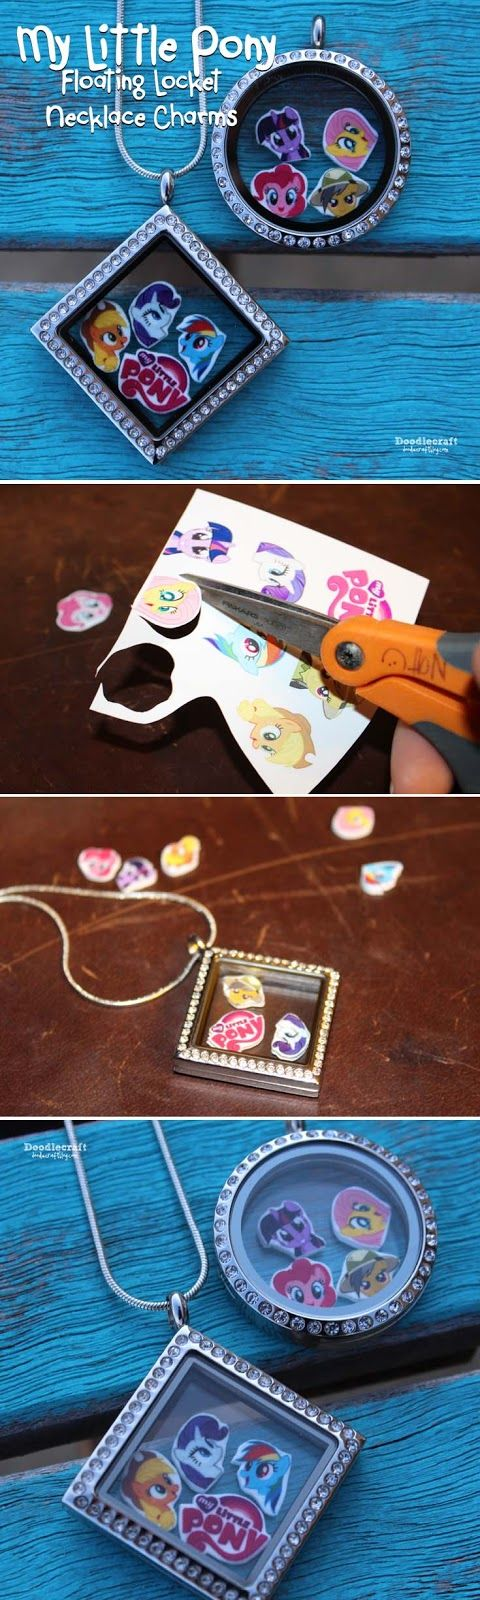 My Little Pony Floating Locket Charms!  Easy to make custom charms